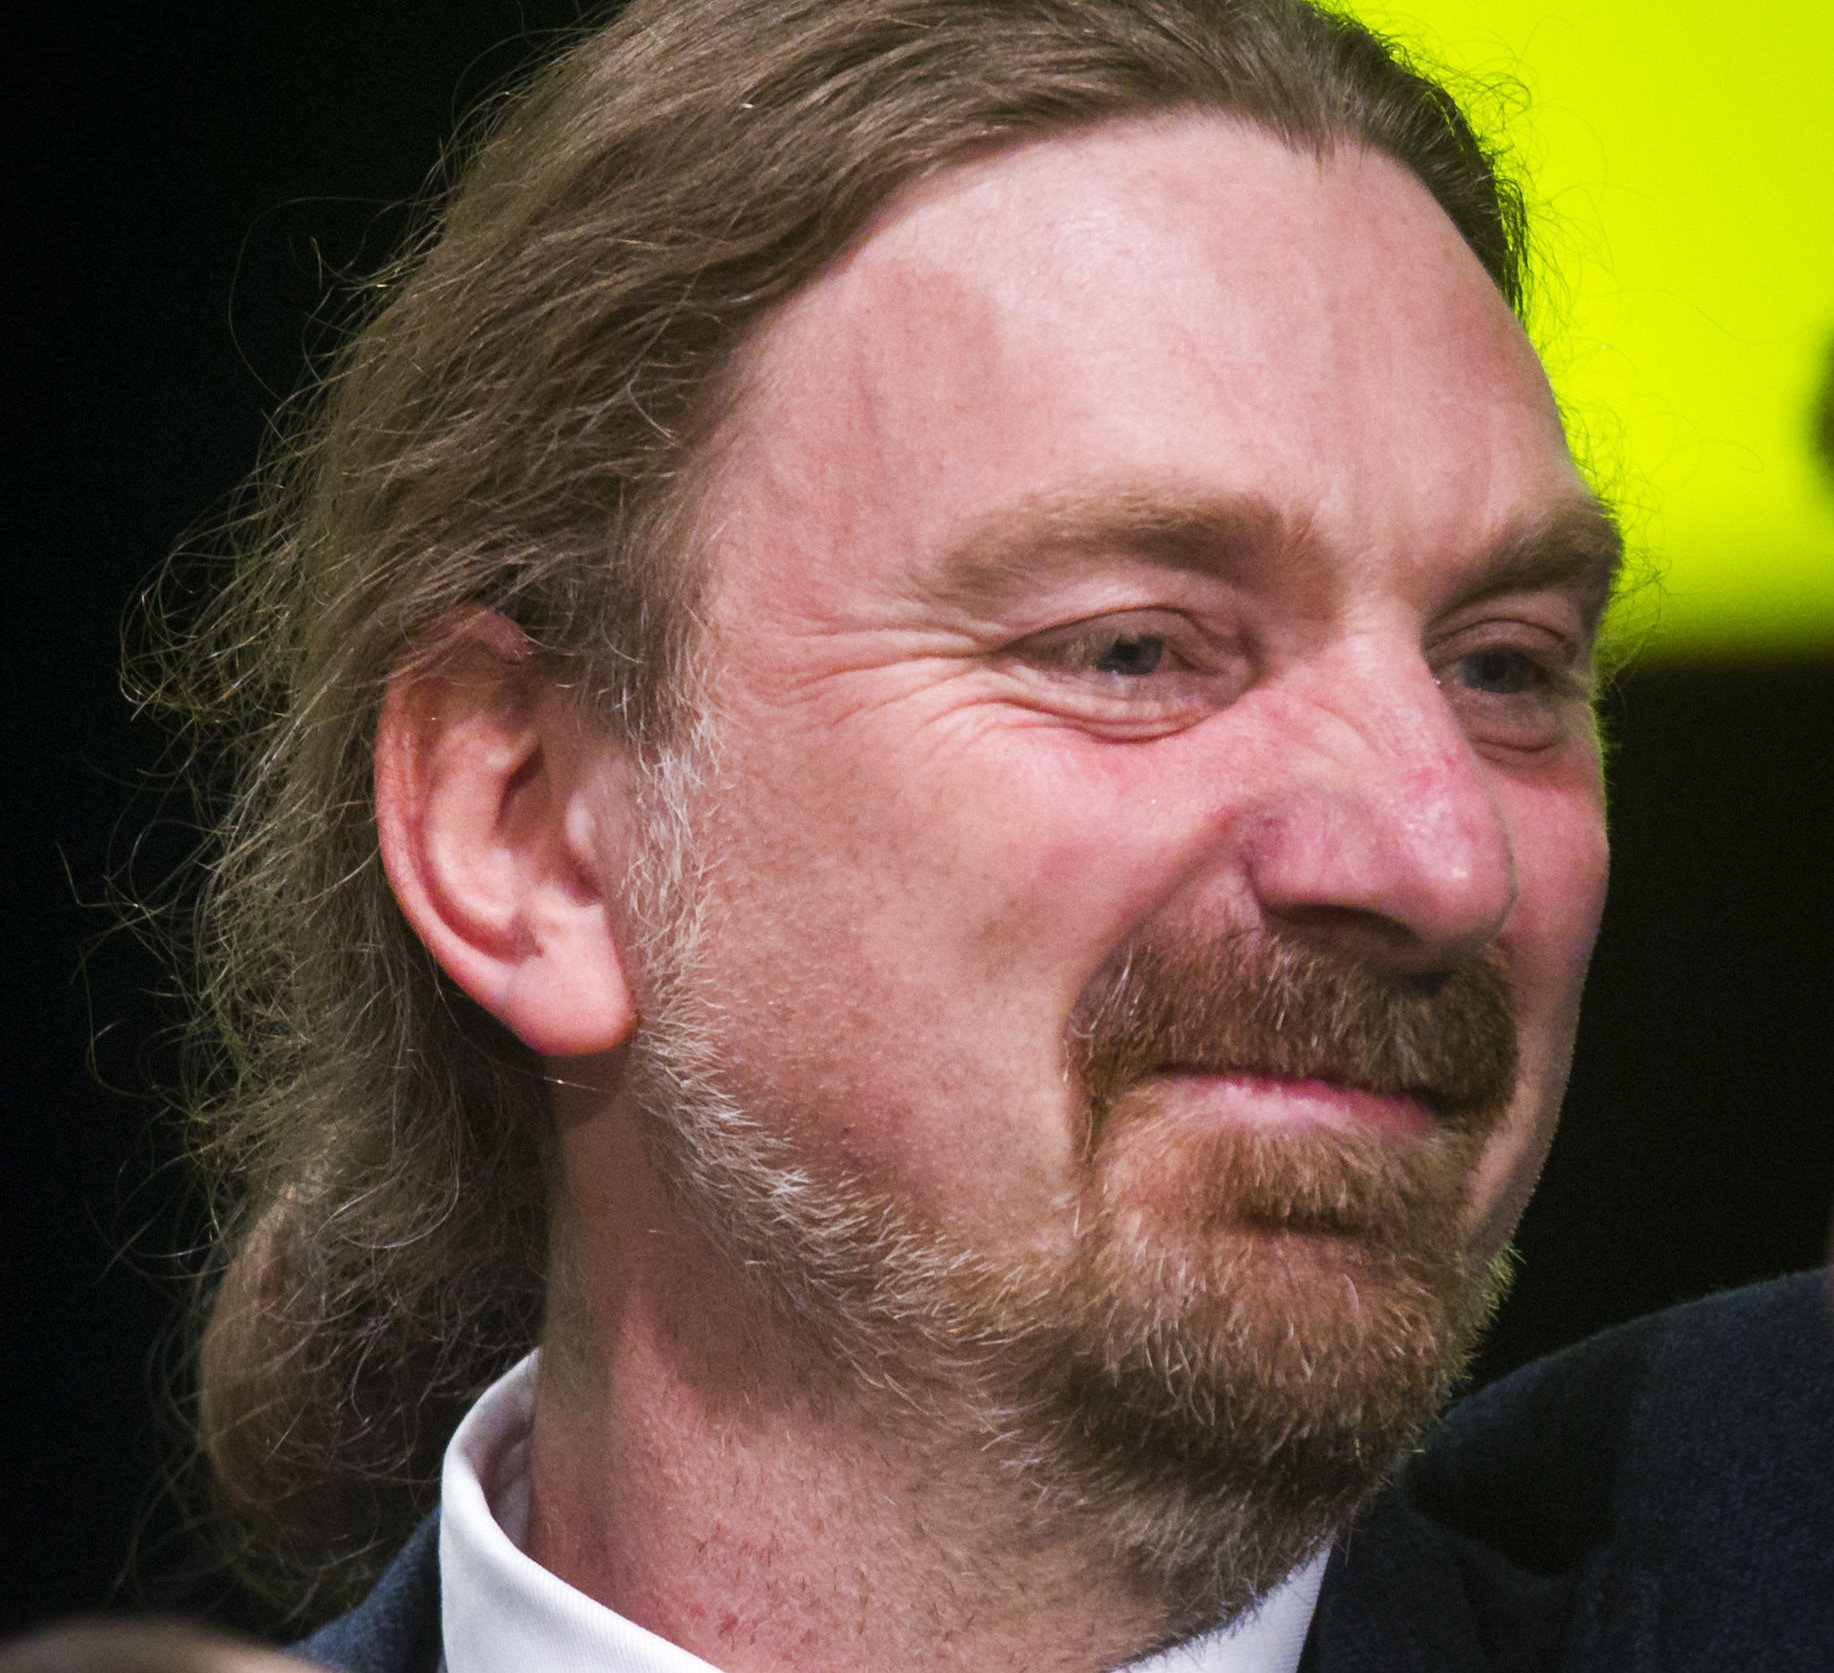 SNP MP Chris Law